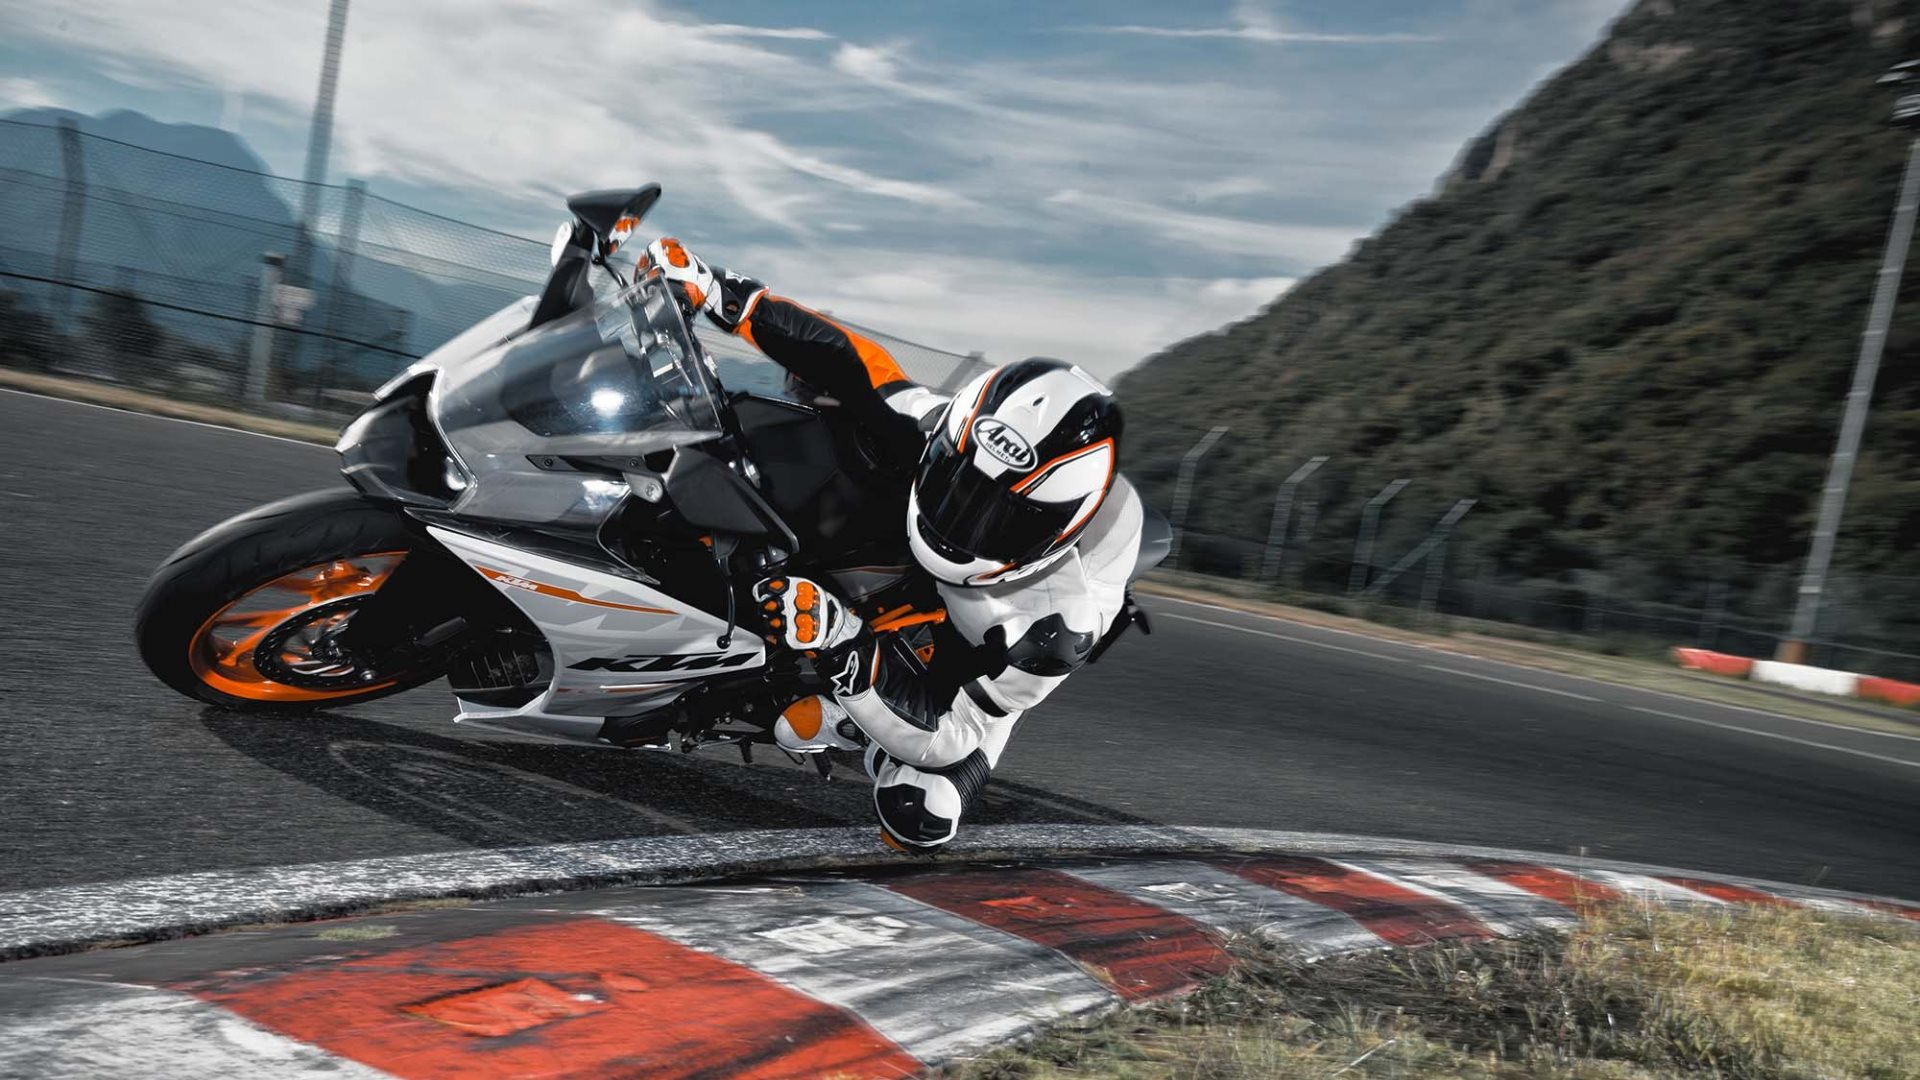 Ktm motorcycles hd wallpapers free wallaper downloads ktm sport - Wallpaper 2 Ktm Rc390 High Definition Hd 1920x1080